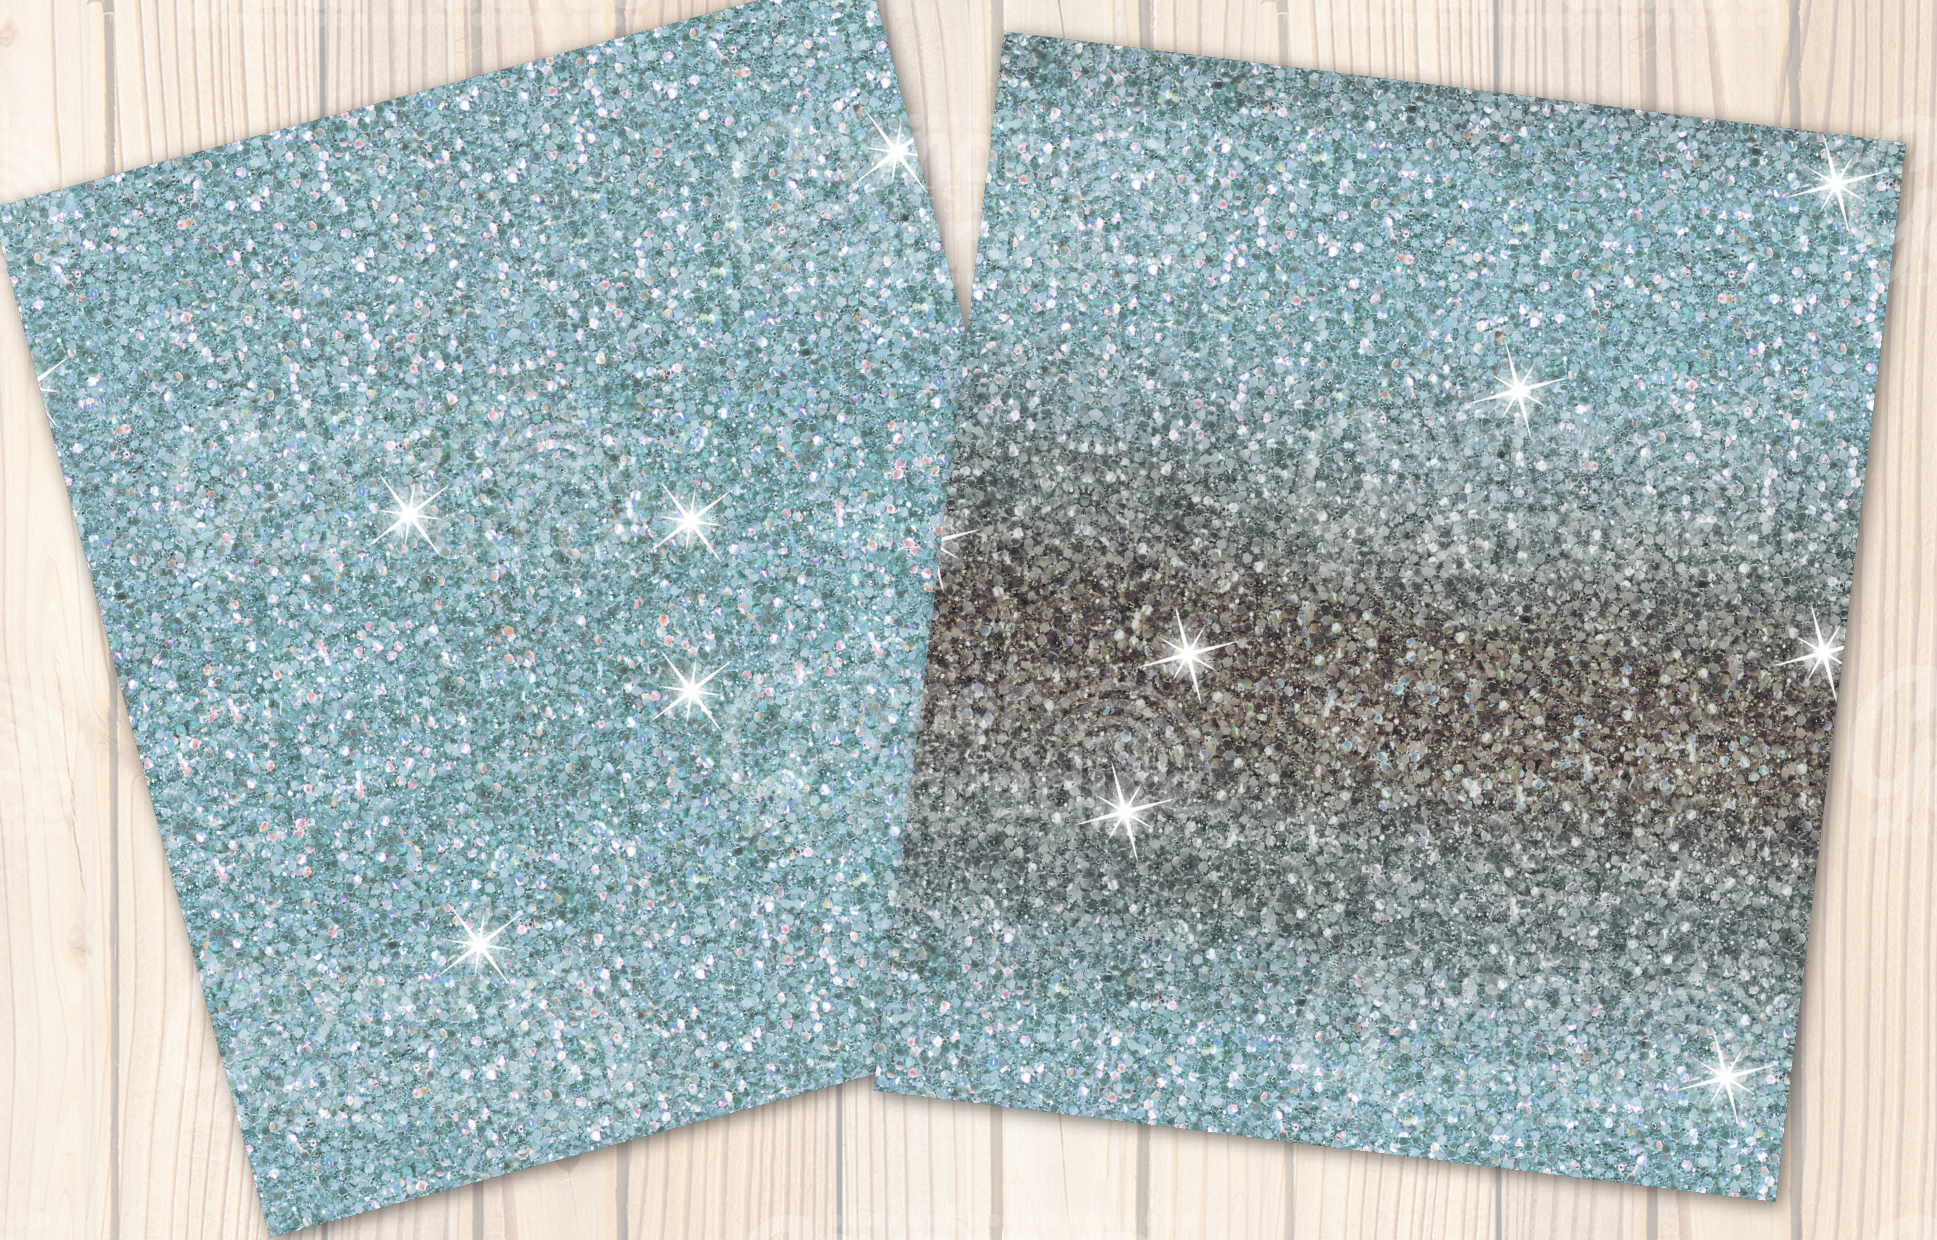 A winters tale - winter Glitter seamless textures example image 5